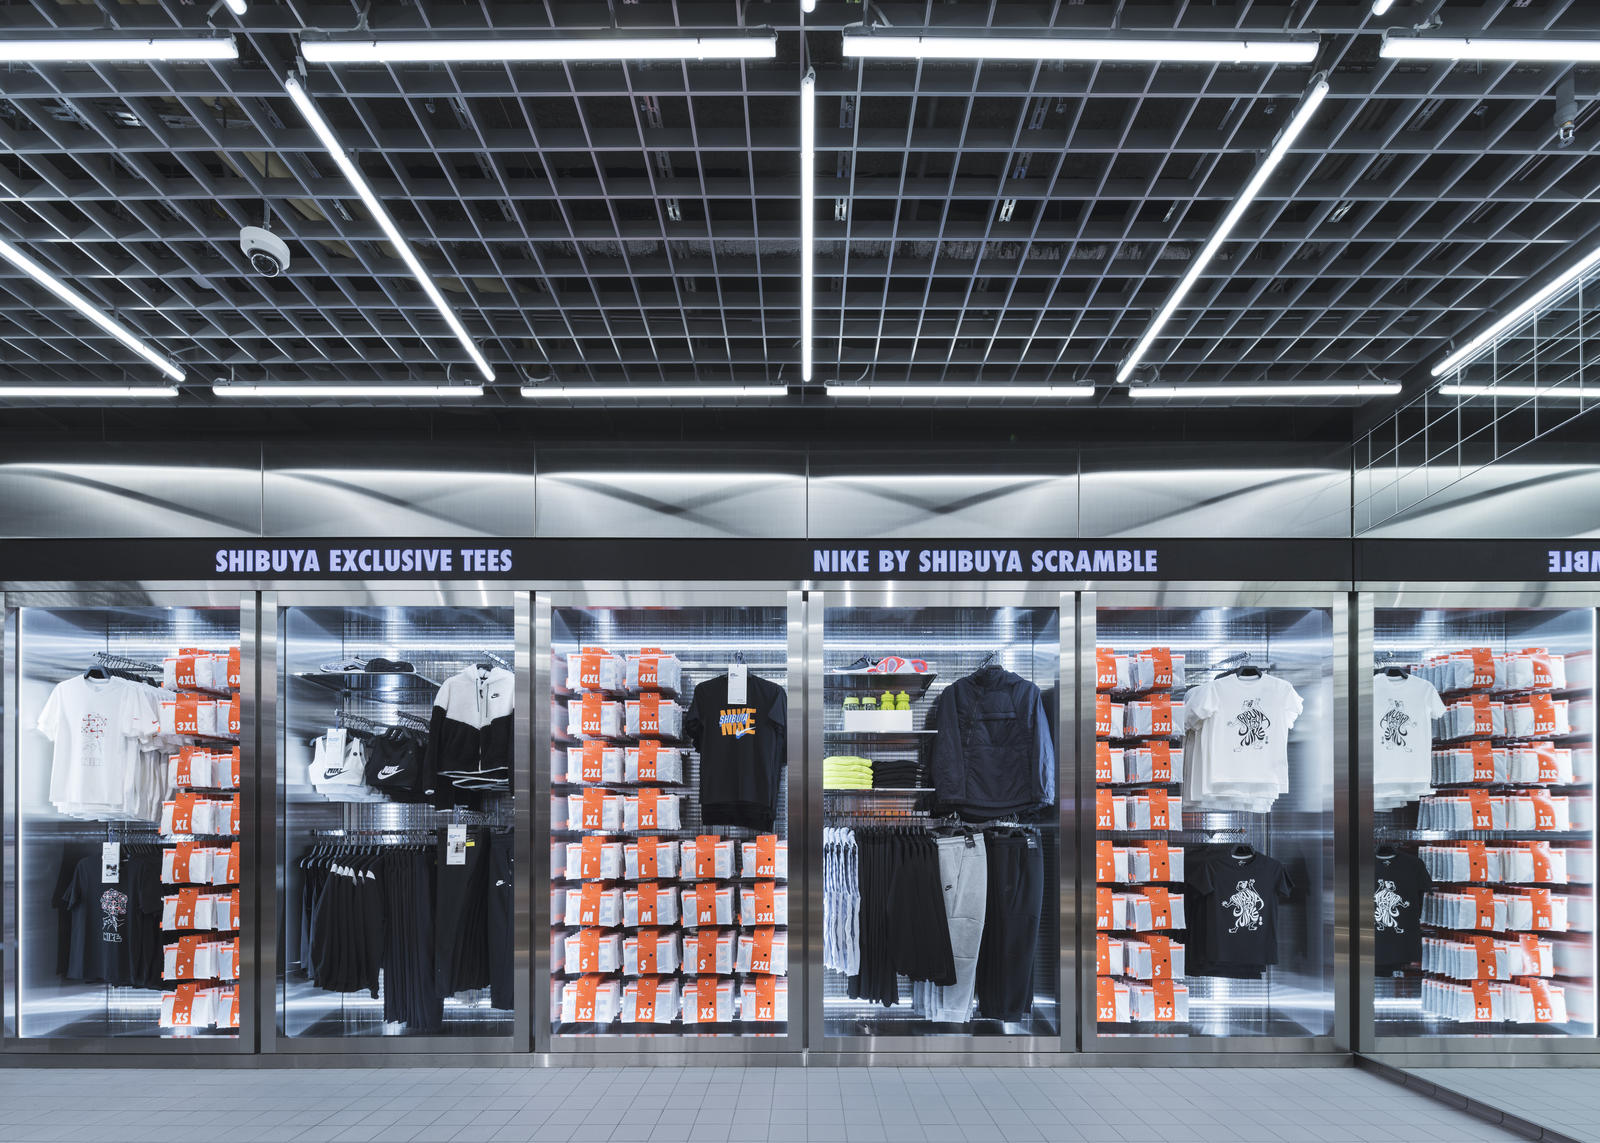 Nike Live Launches in Long Beach and Shibuya Scramble 3